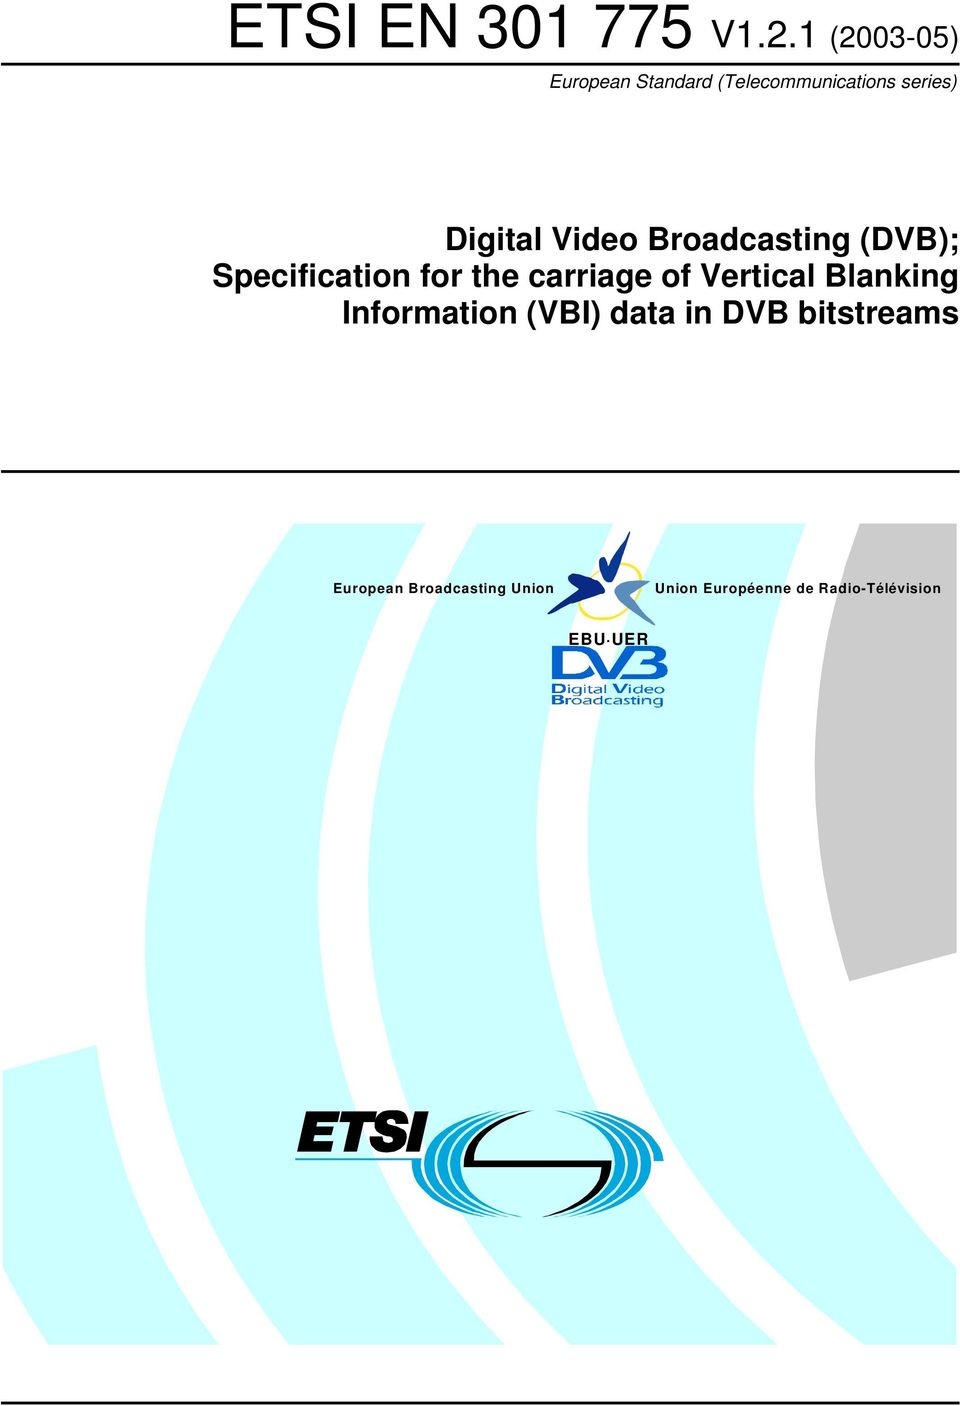 Video Broadcasting (DVB); Specification for the carriage of Vertical